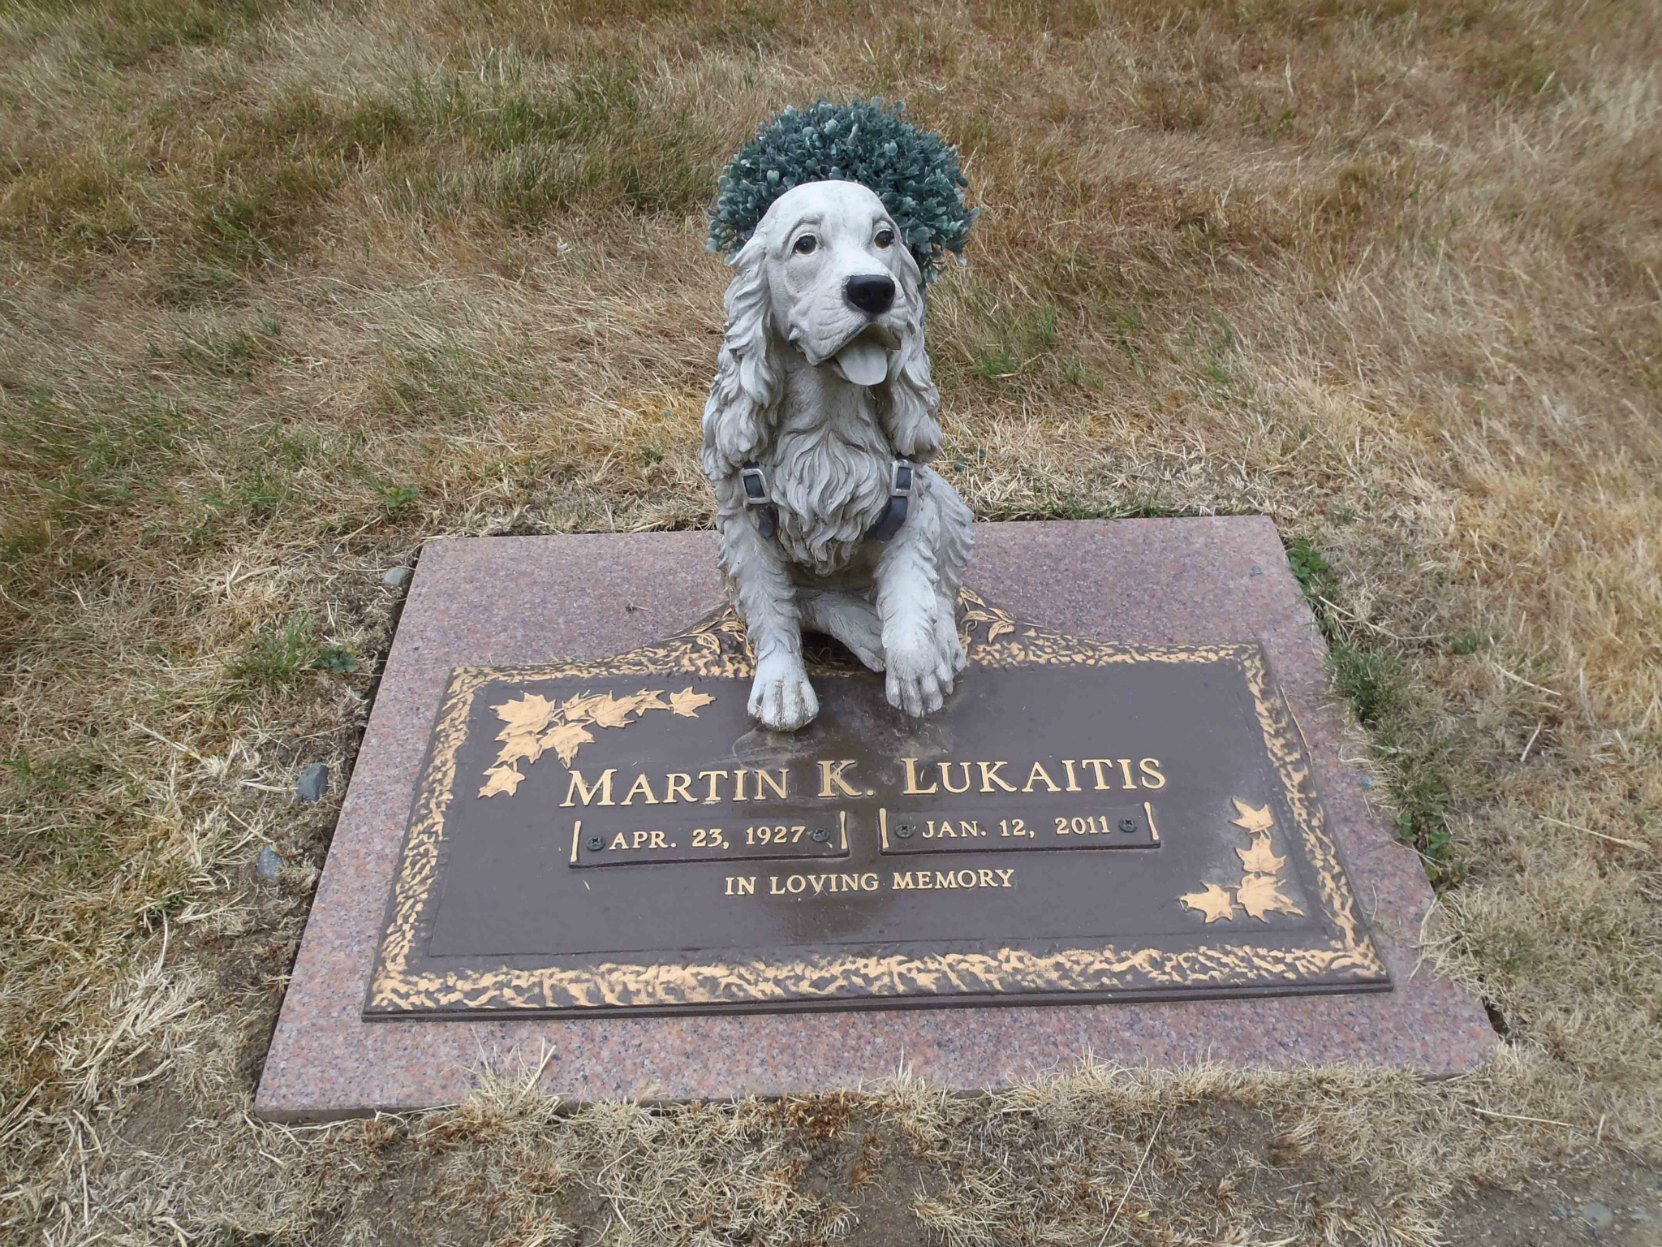 Martin Lukaitis grave marker, Mountain View Cemetery, North Cowichan, B.C.